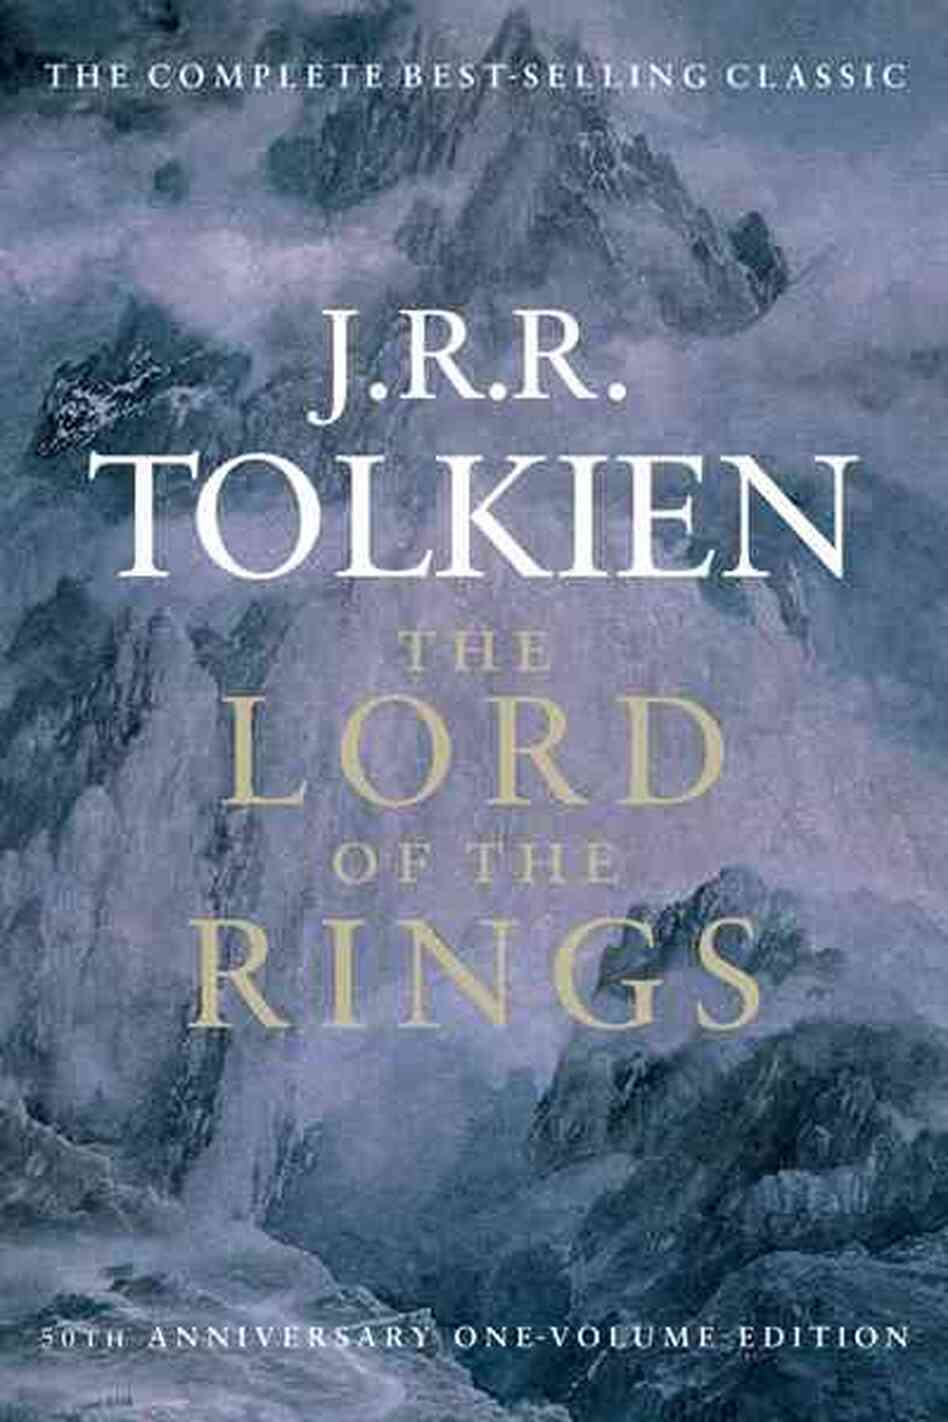 an analysis of tolkiens famous fantasy book the lord of the rings A lord of tree and glen, when golden were the boughs in spring here follows one of the last notes in the red book lord of the rings appendices ebook tolkien quiz you and tolkien quiz the white council message board.